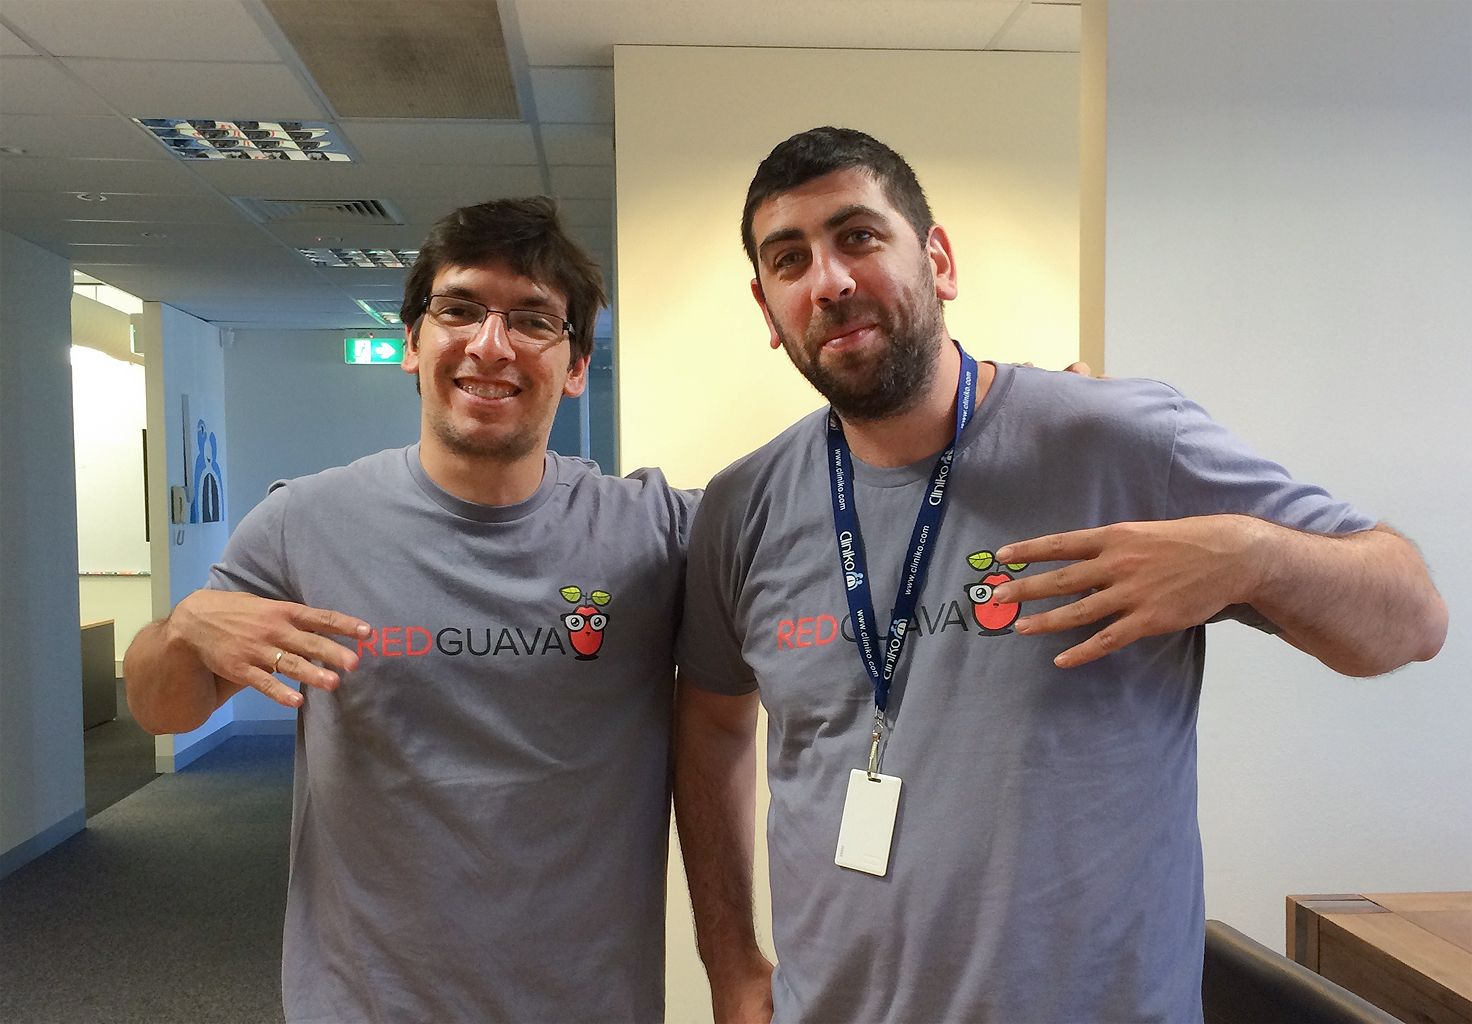 Two members of the Cliniko team wearing 'Red Guava' t-shirts in our first office in Melbourne.